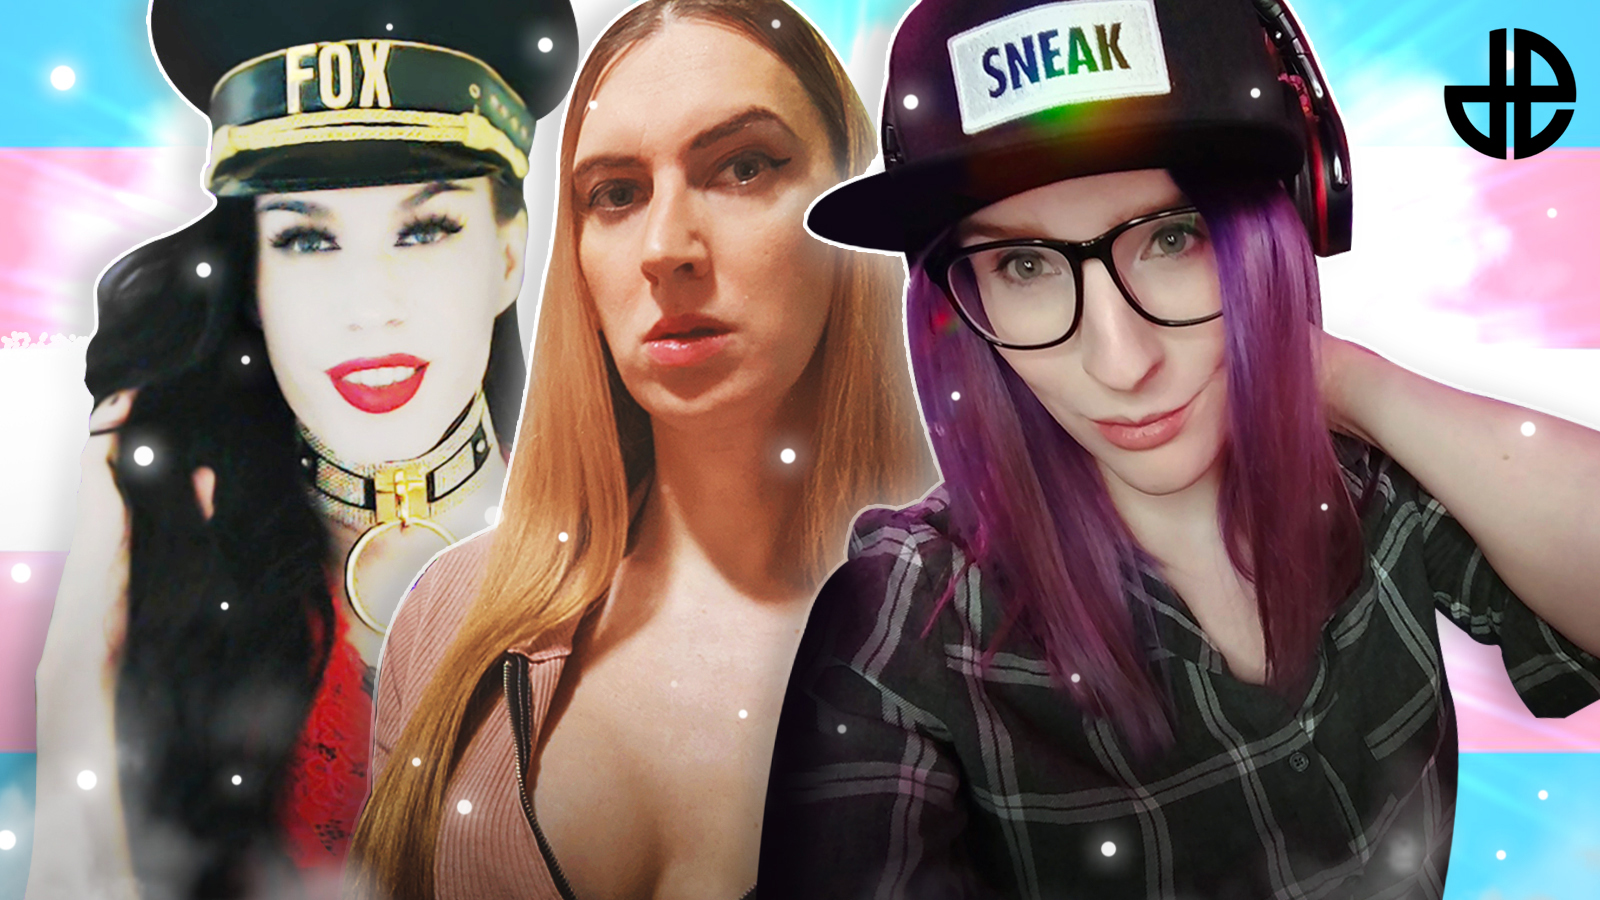 MSTRSSFOX, Elle Rows and Miabyte Trans Twitch Streamers